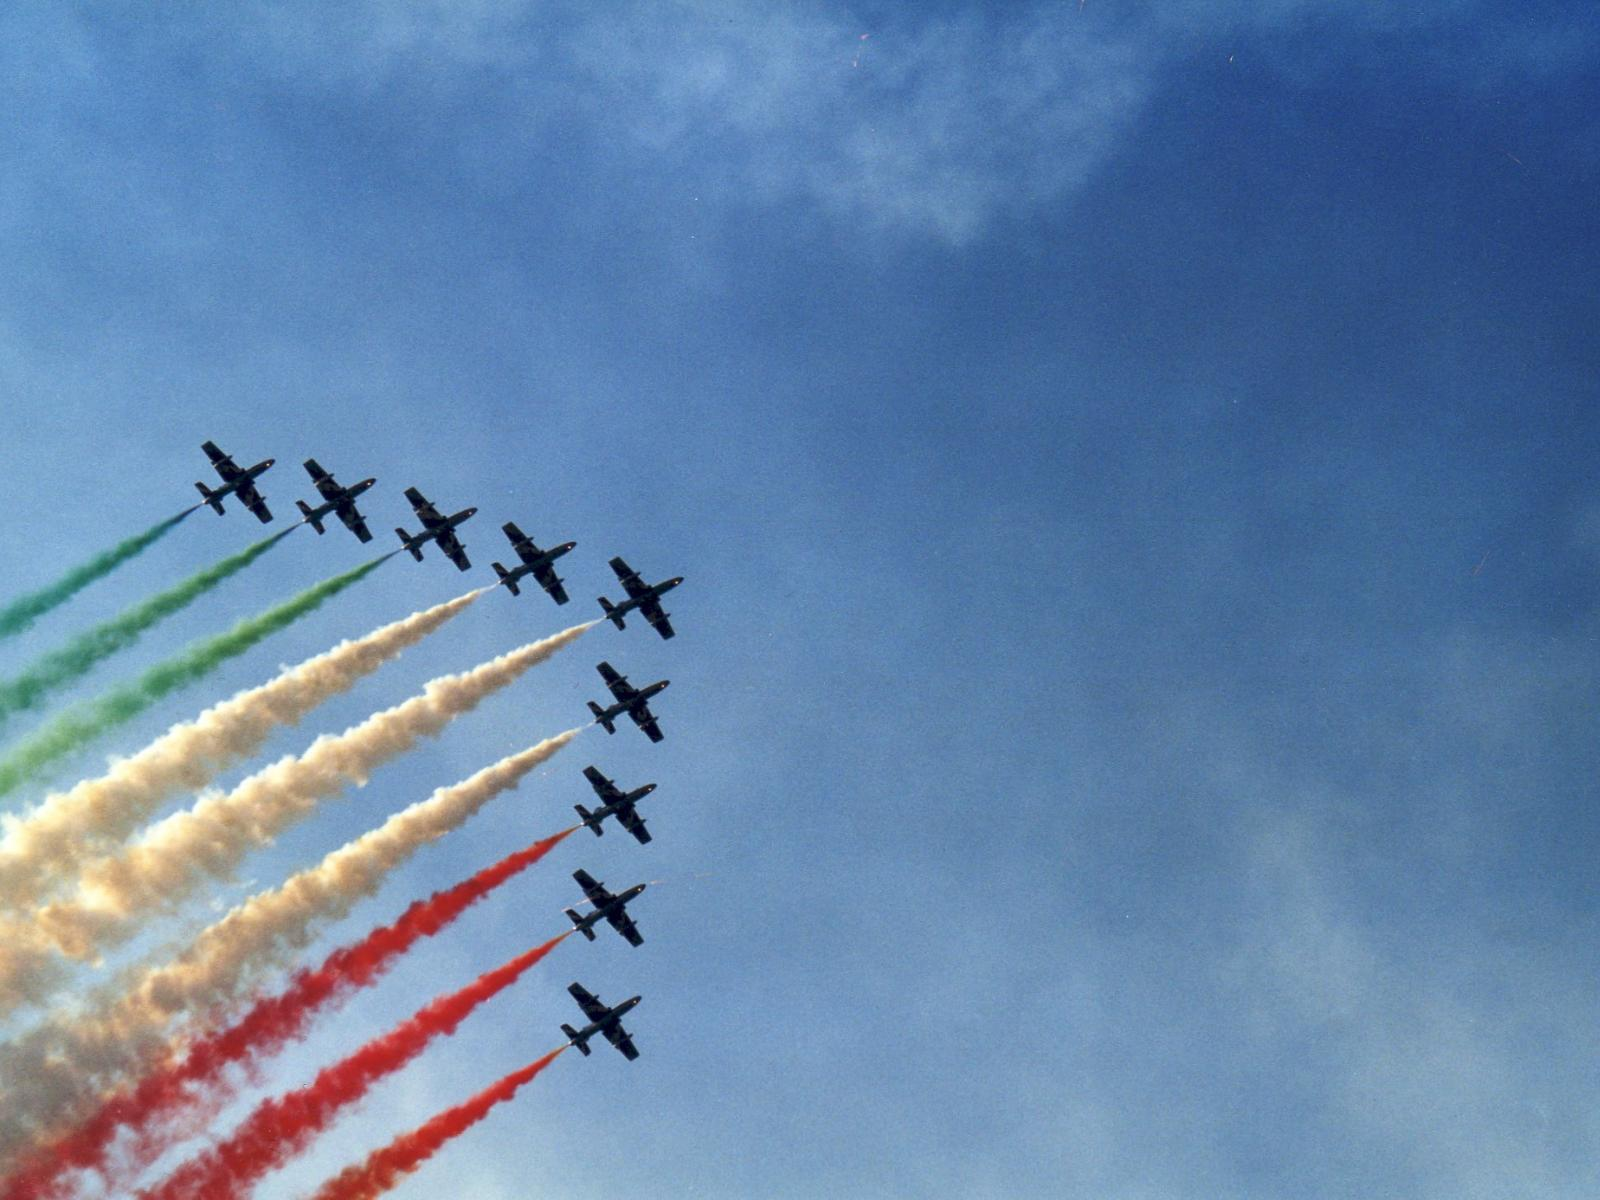 Italian Flag Images Wallpapers 27 Wallpapers Adorable Wallpapers 1600x1200